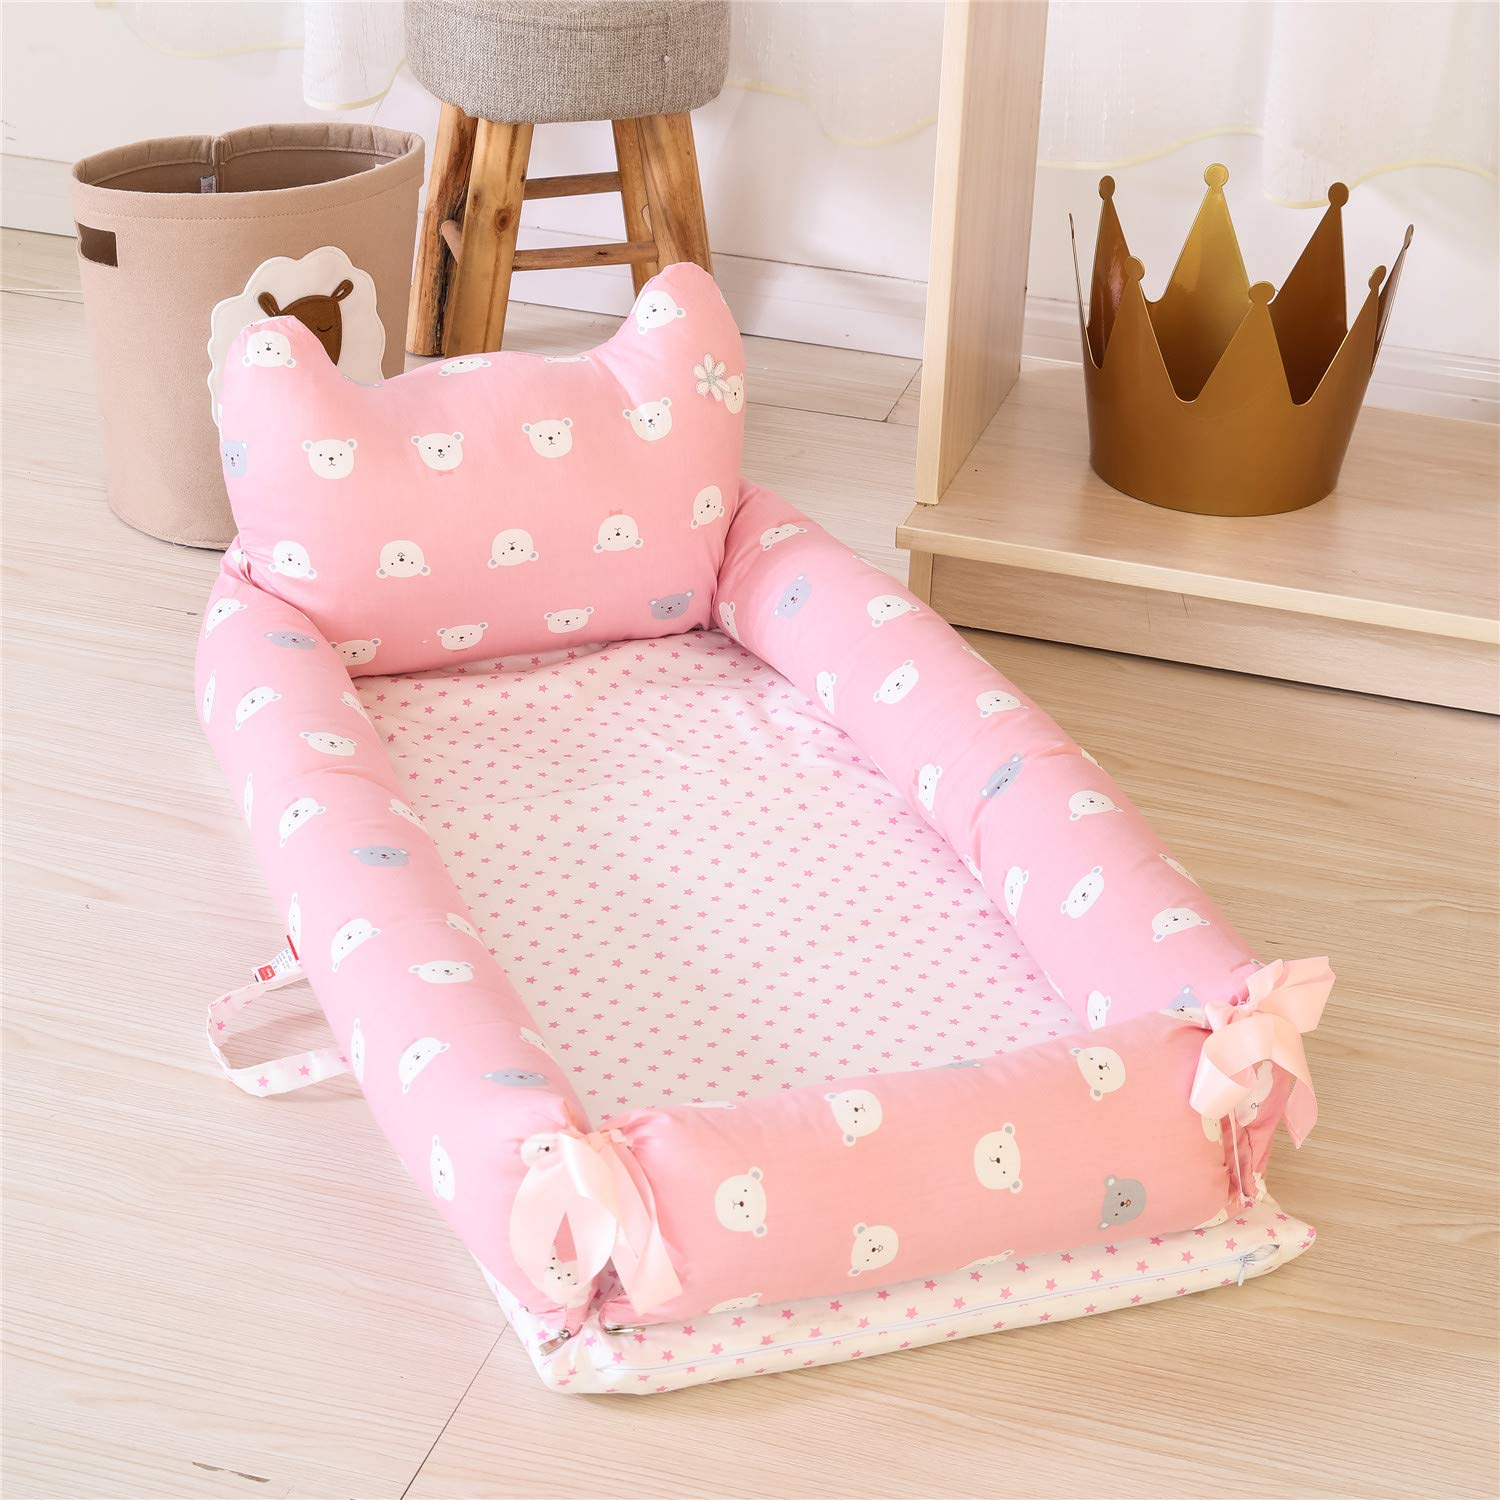 0-24 Months Co-Sleeping Baby Bed Bear-Pink Baby Lounger 100/% Cotton Portable Crib for Bedroom//Travel Abreeze Baby Bassinet for Bed